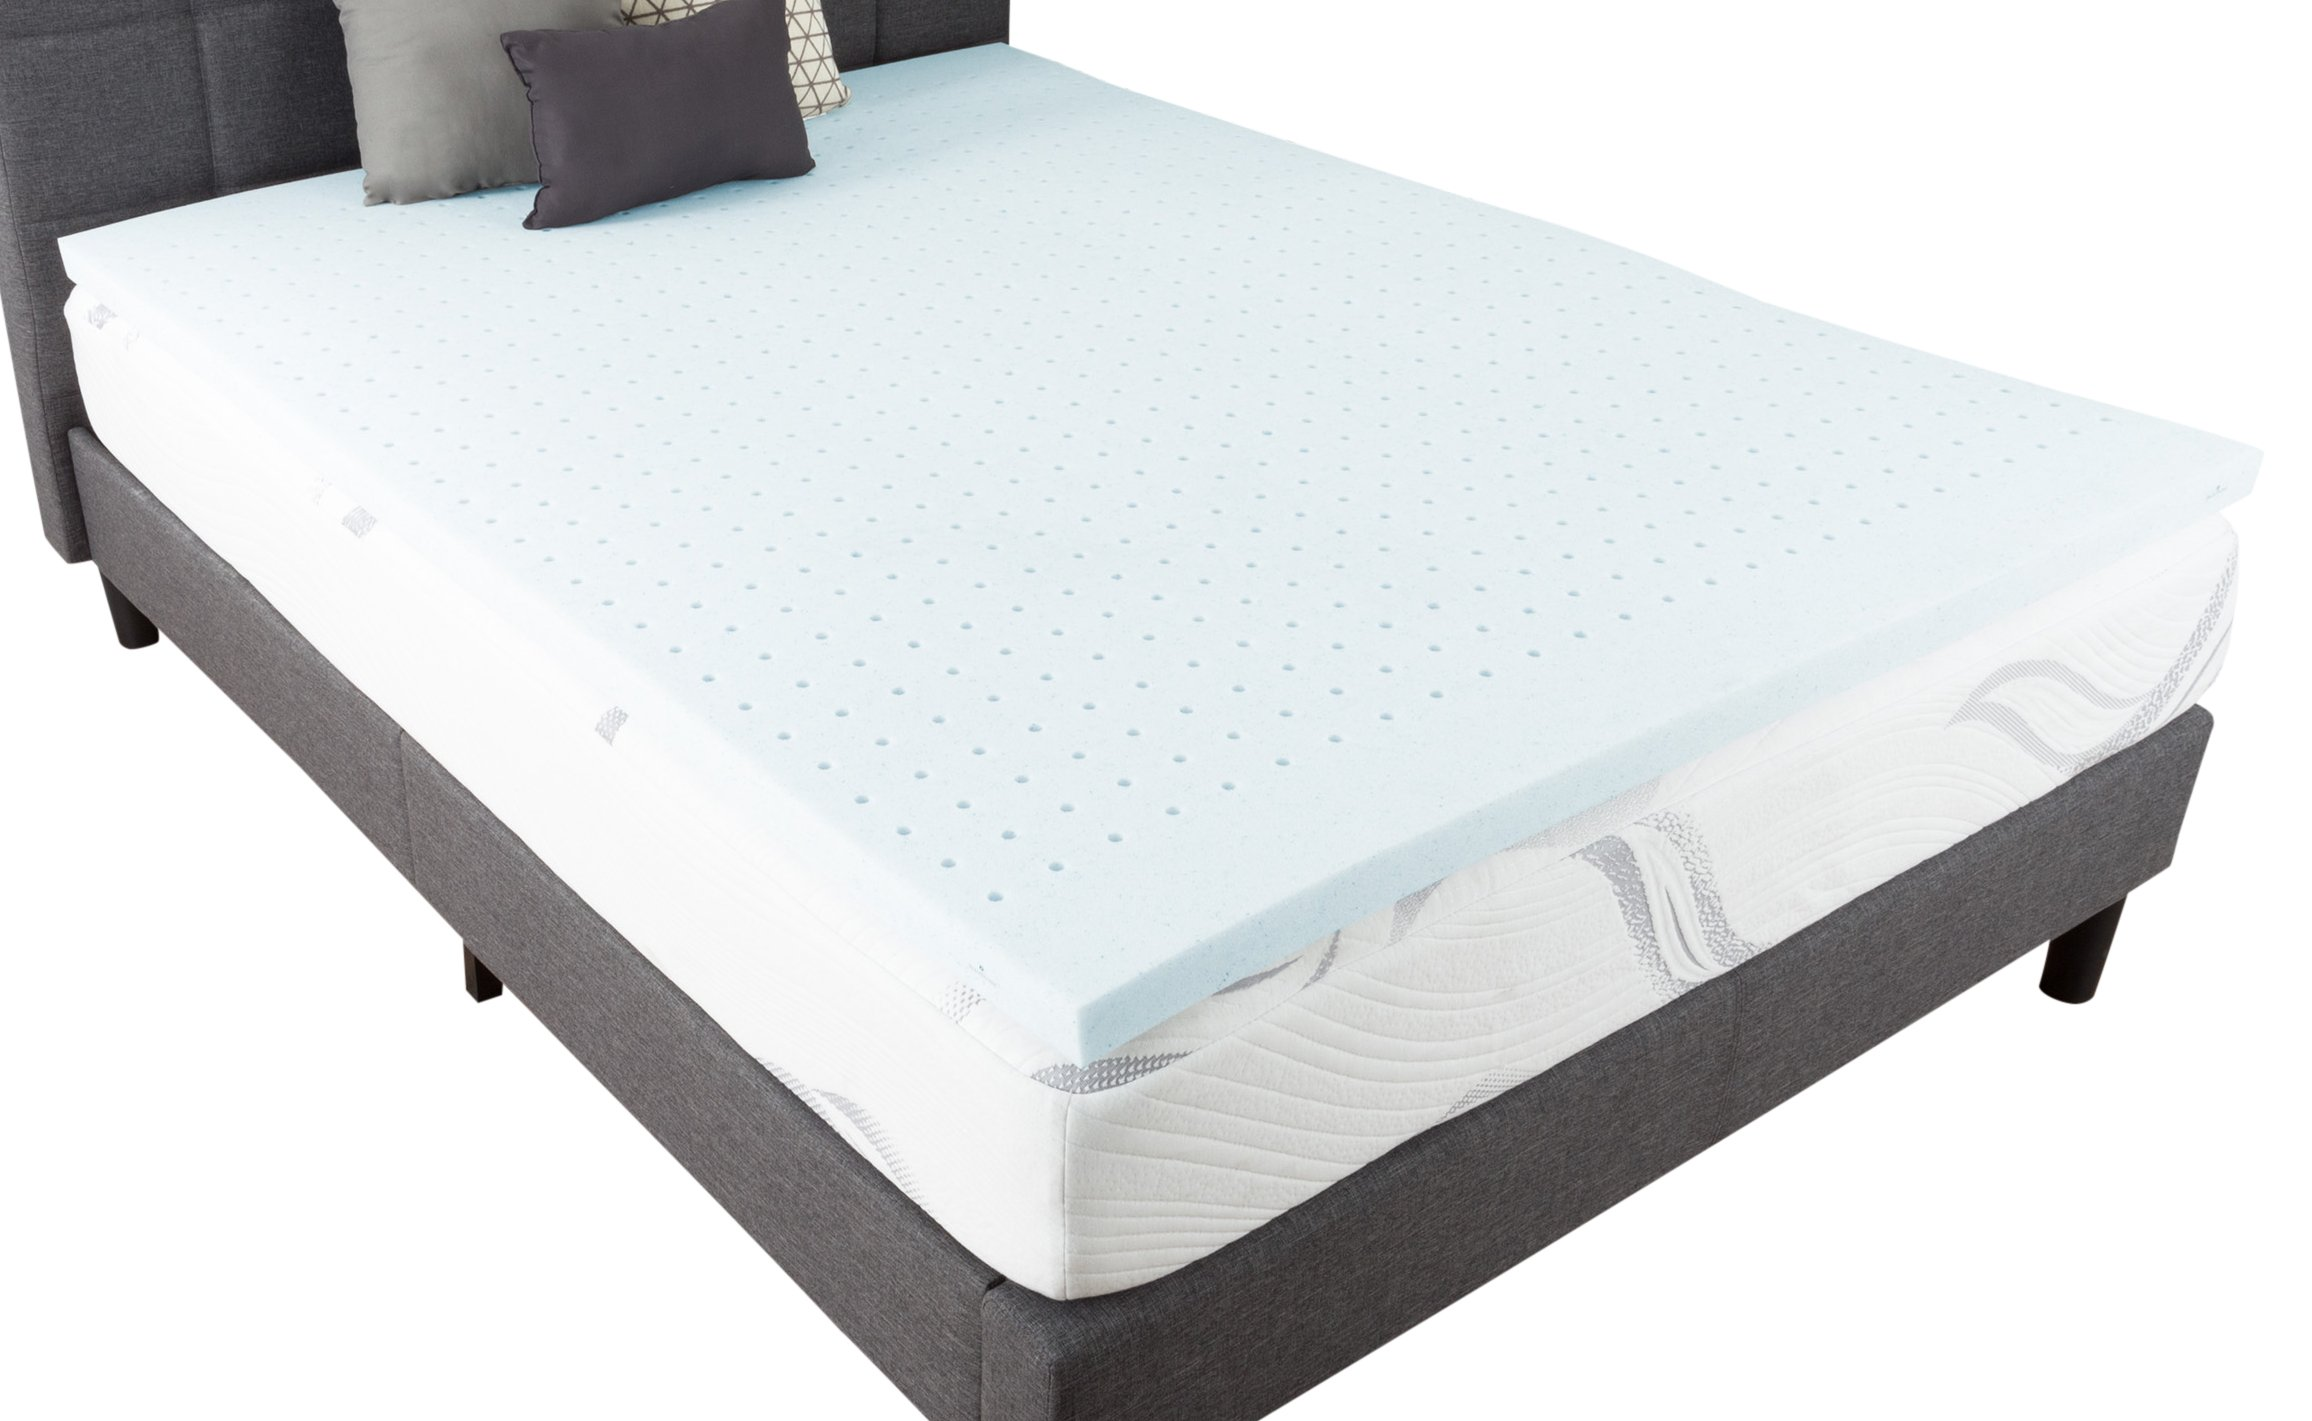 Bluestone 82-TEX1031 Gel Infused Topper-2 Inch Size Memory Foam Mattress Pad with Ventilation for Support, Cooling, and Comfort, Queen, White